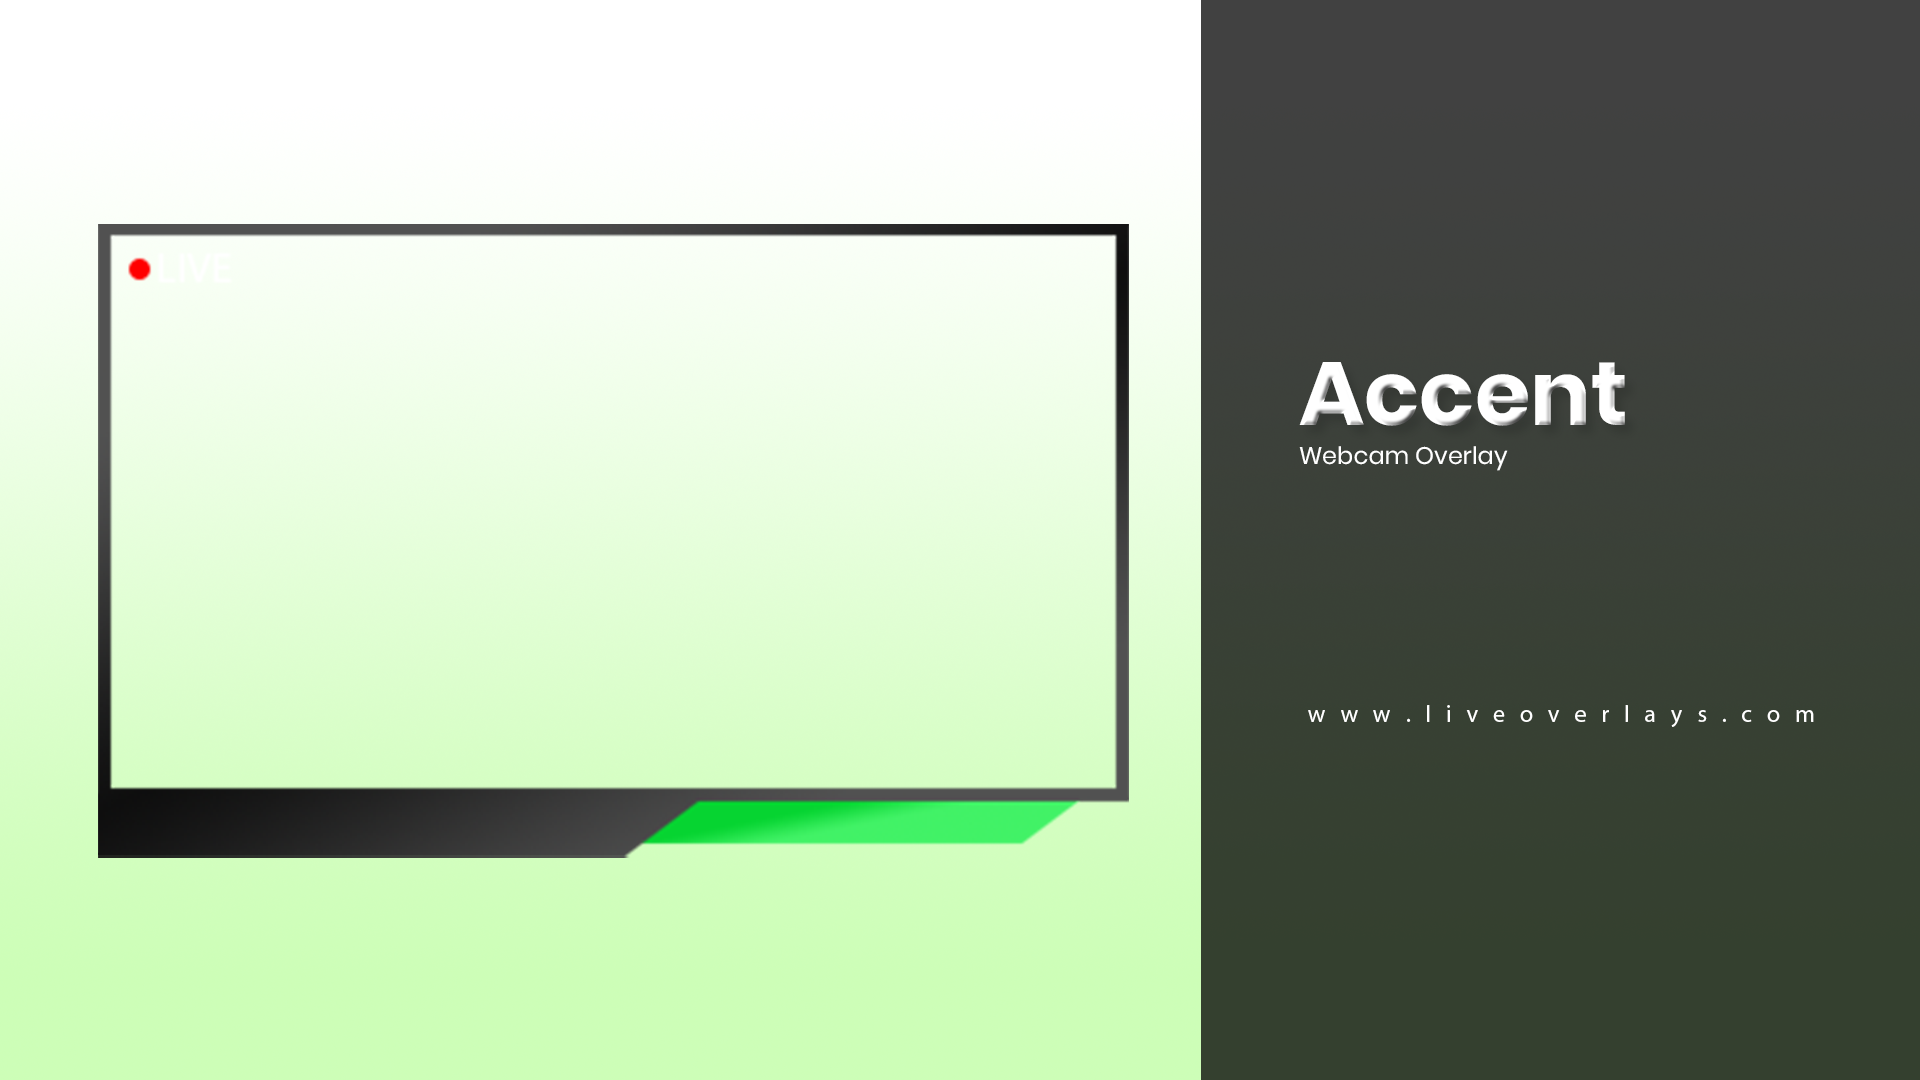 Accent (Webcam Overlay).